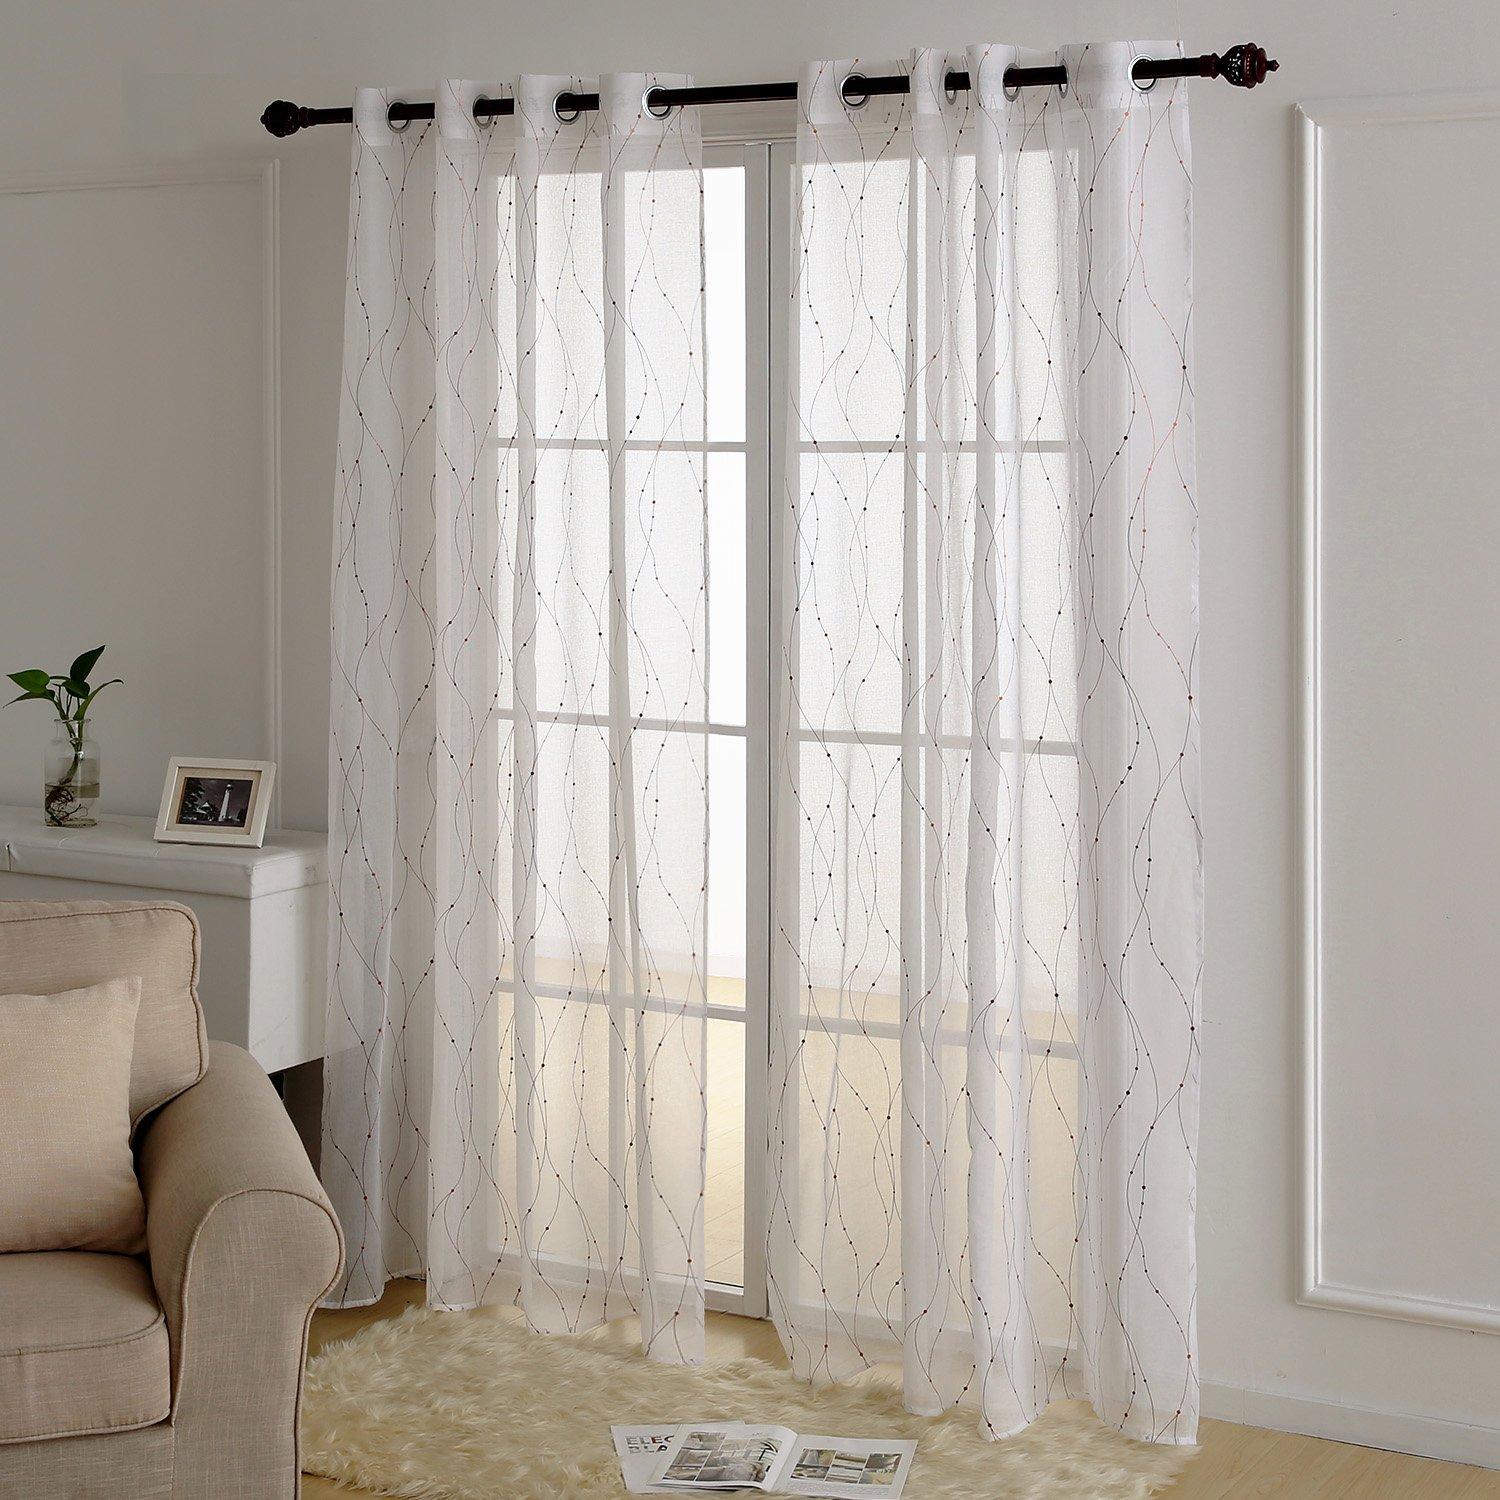 Deconovo White Sheer Curtains 54 Wave Line Dots Foil Printed Grommet Sheer Curtains Linen Look Voile Drapes Windows 52W x 54L Inch Dark Gold 2 Panels